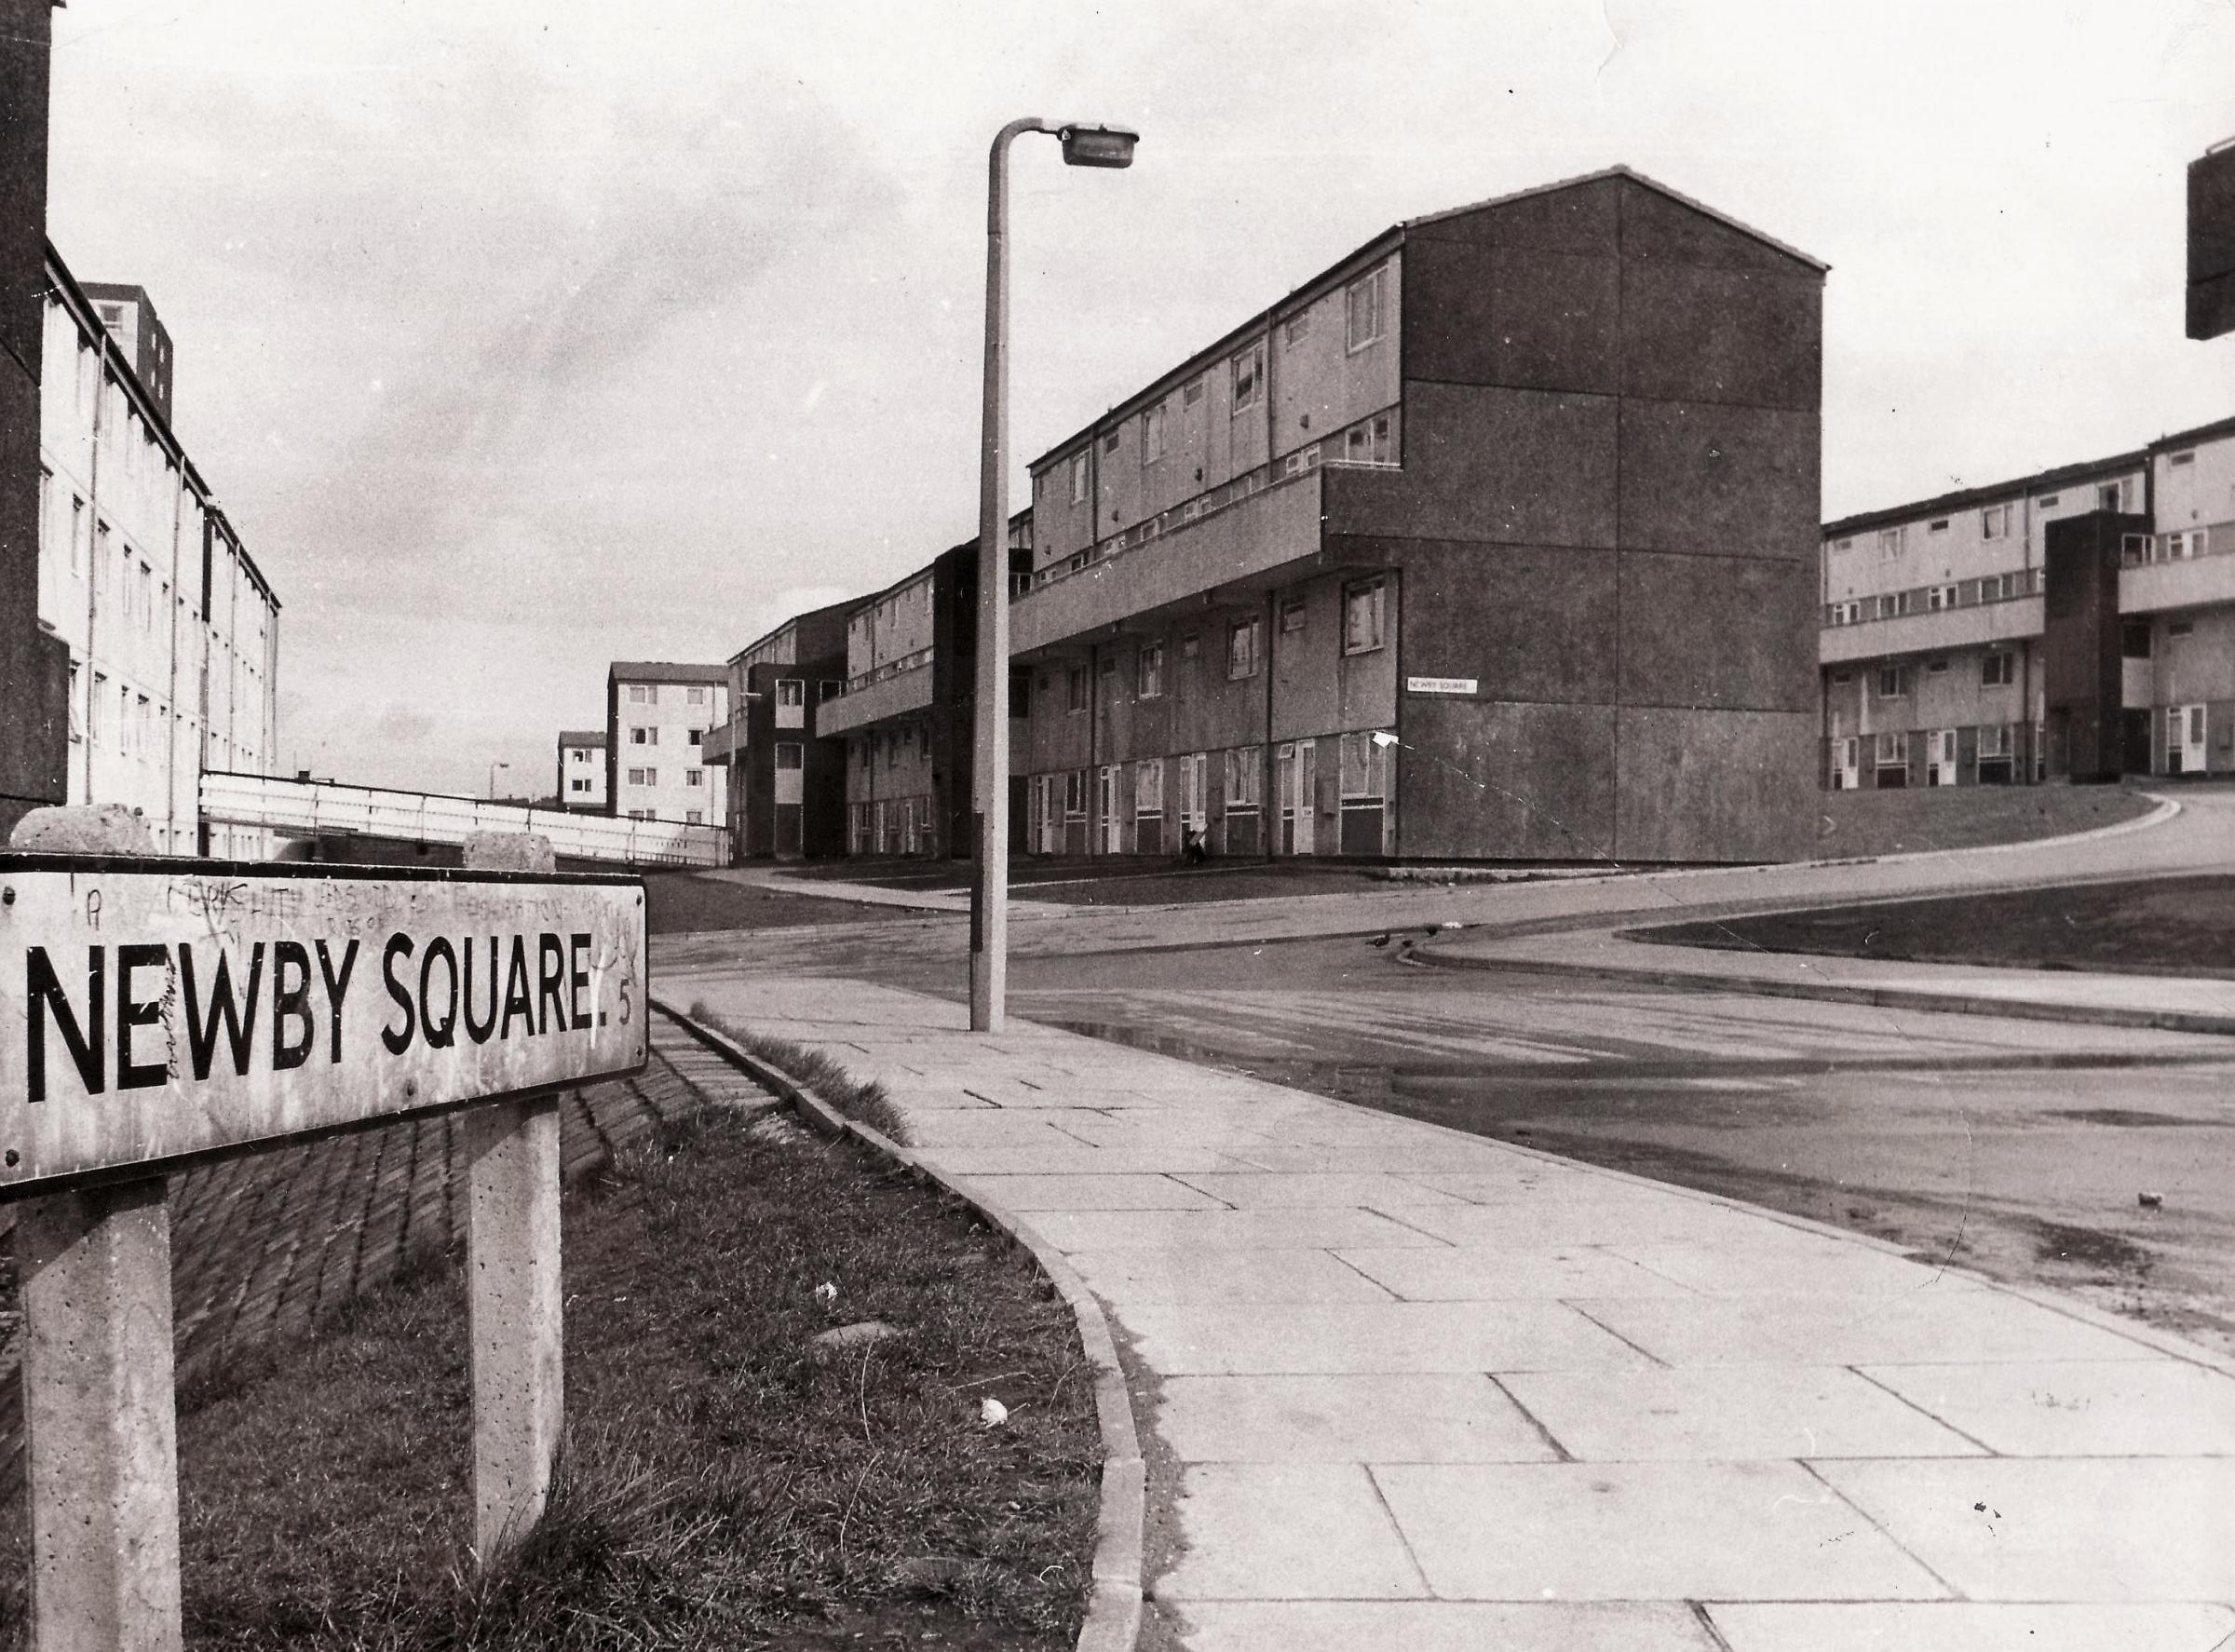 Newby Square, a Sixties housing disaster